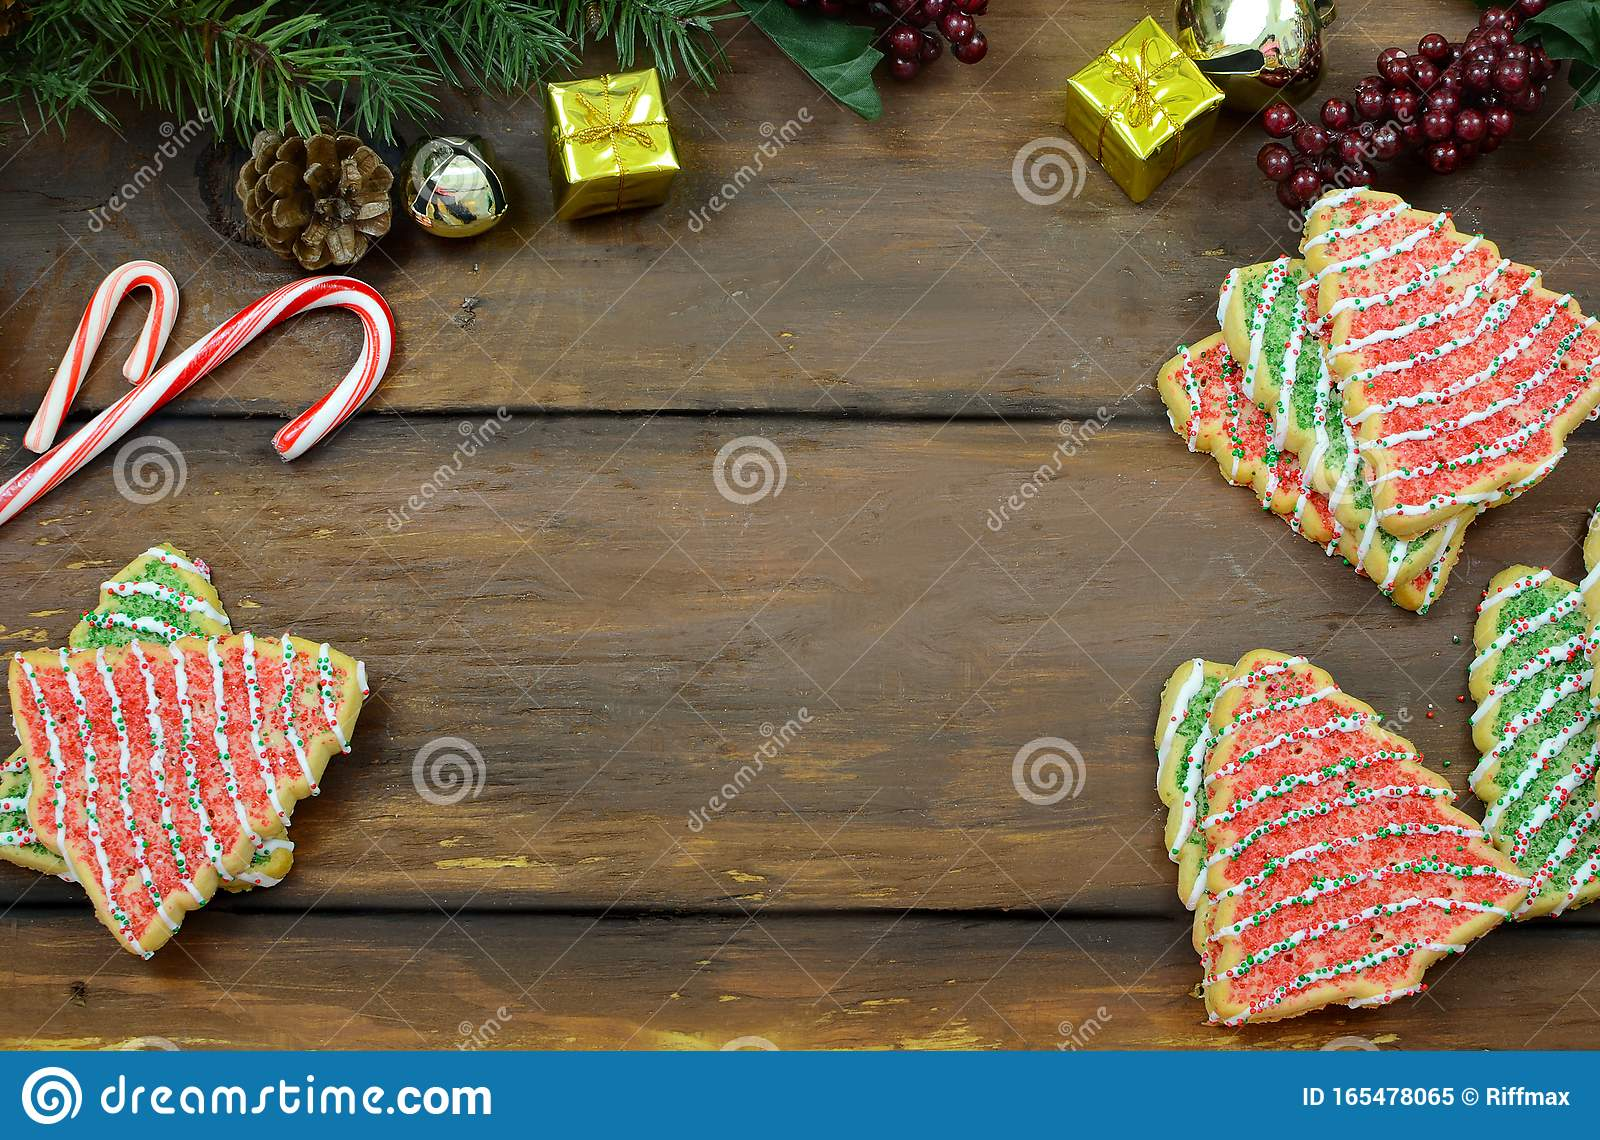 Christmas Tree Shaped Sugar Cookies Candy Canes Pine Branches With Cones Mini Gifts And Jingle Bells On A Wide Plank Rustic Wood Stock Image Image Of Copy Holiday 165478065